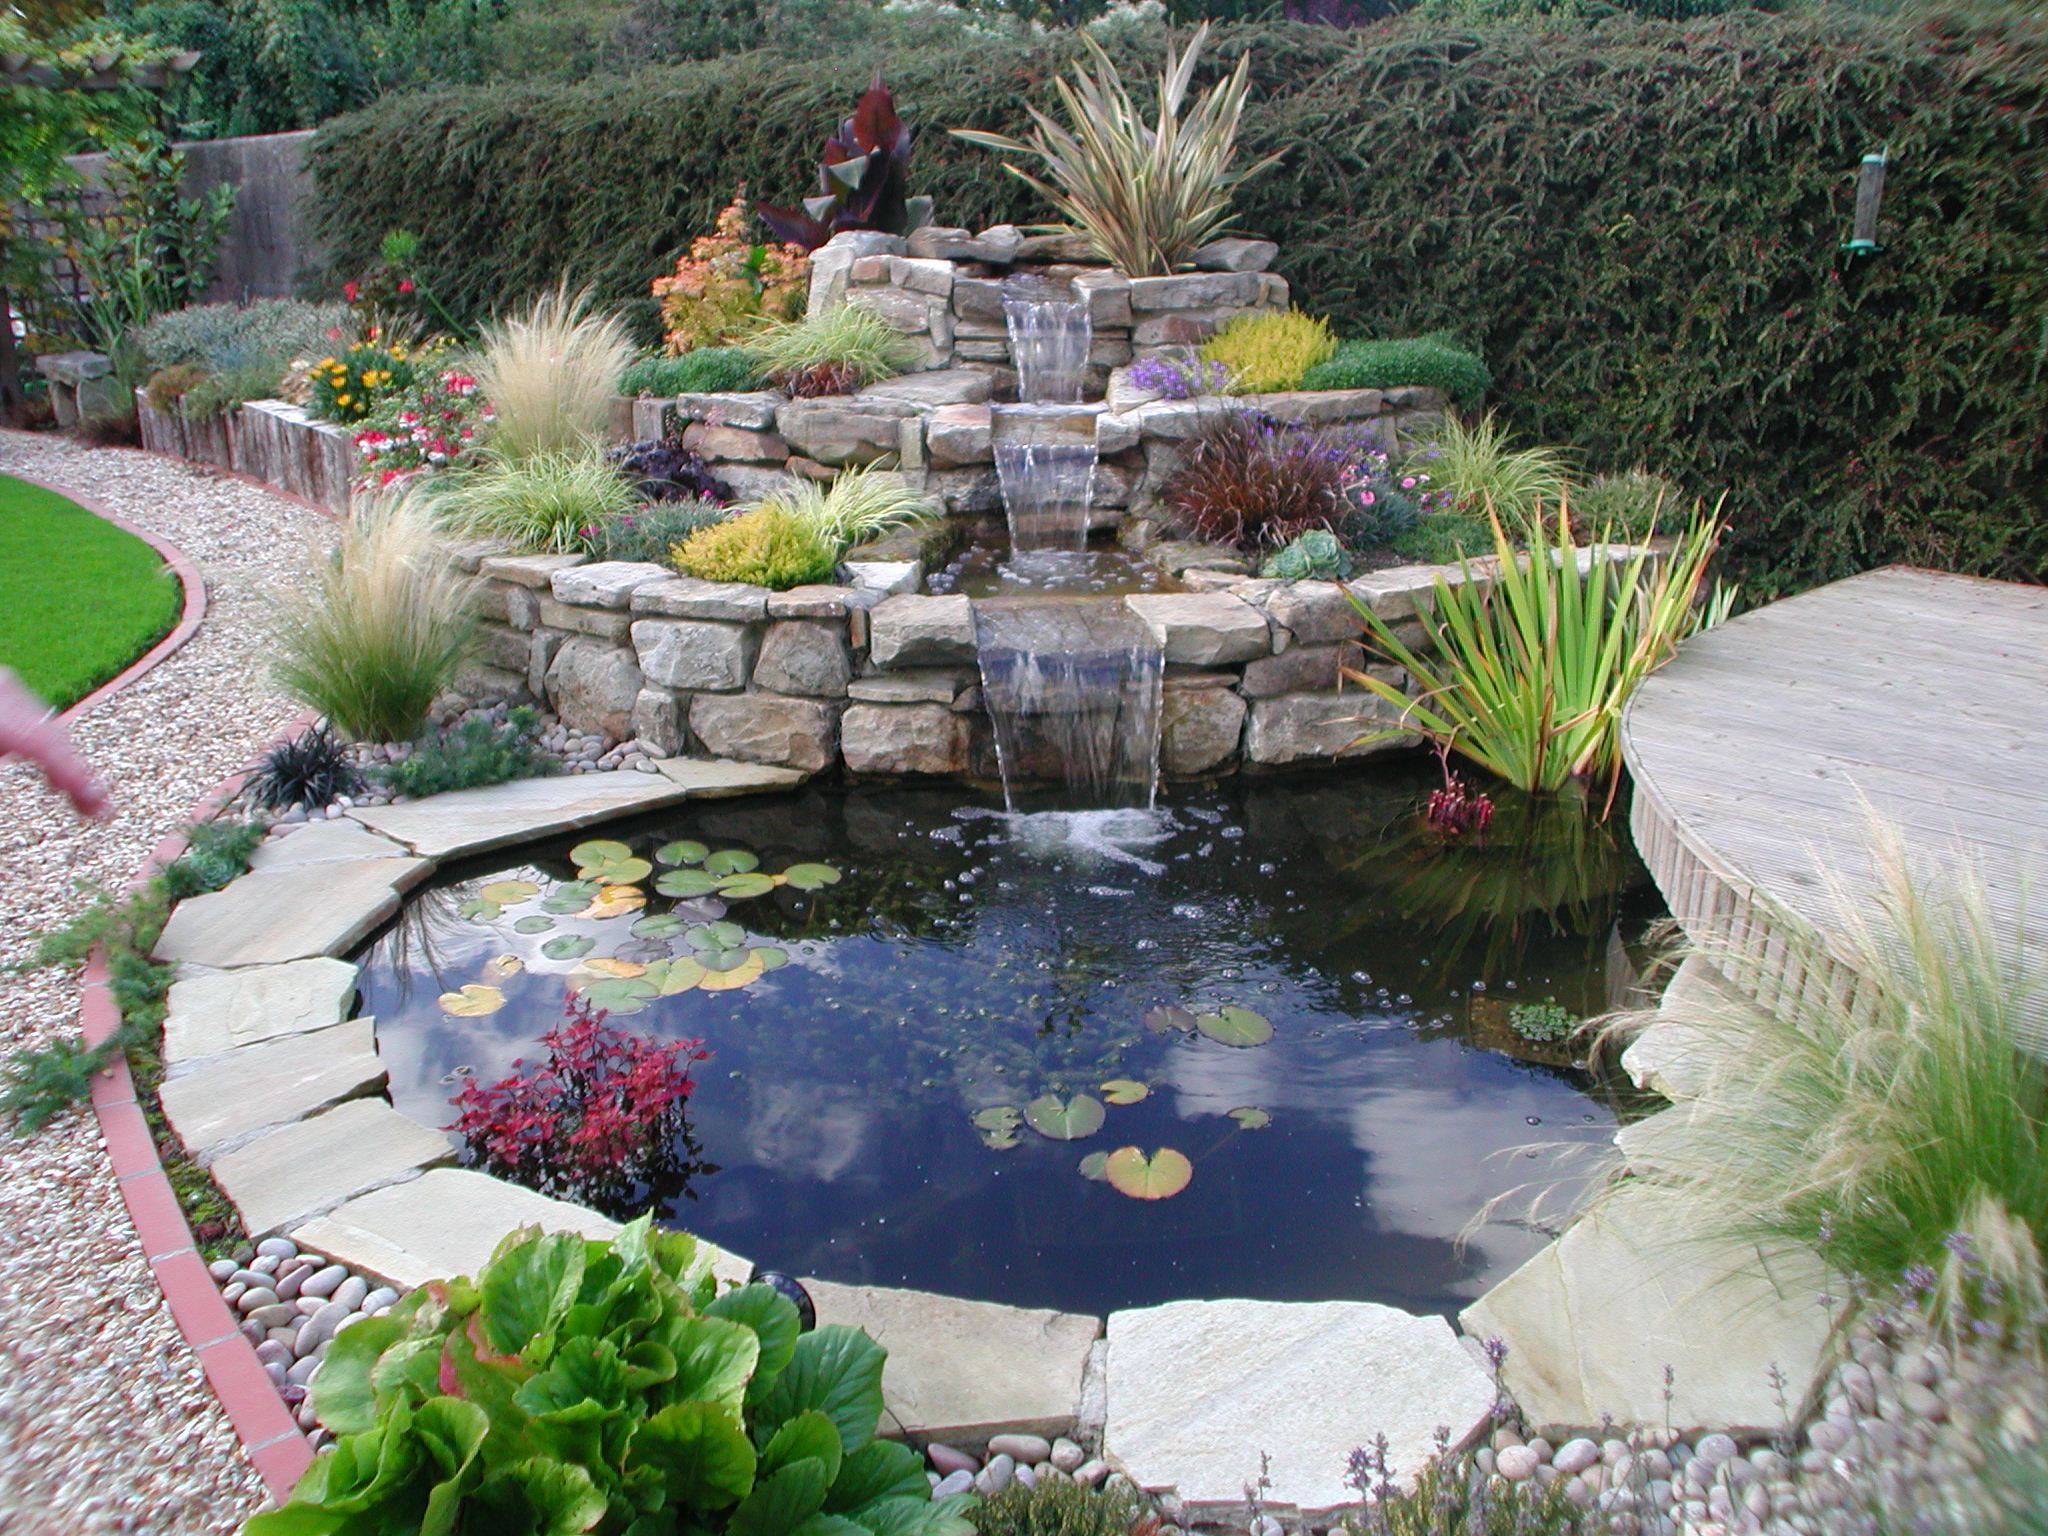 Water Feature Including Waterfall, Koi Carp Pond and Beach, Bray, Co Wicklow